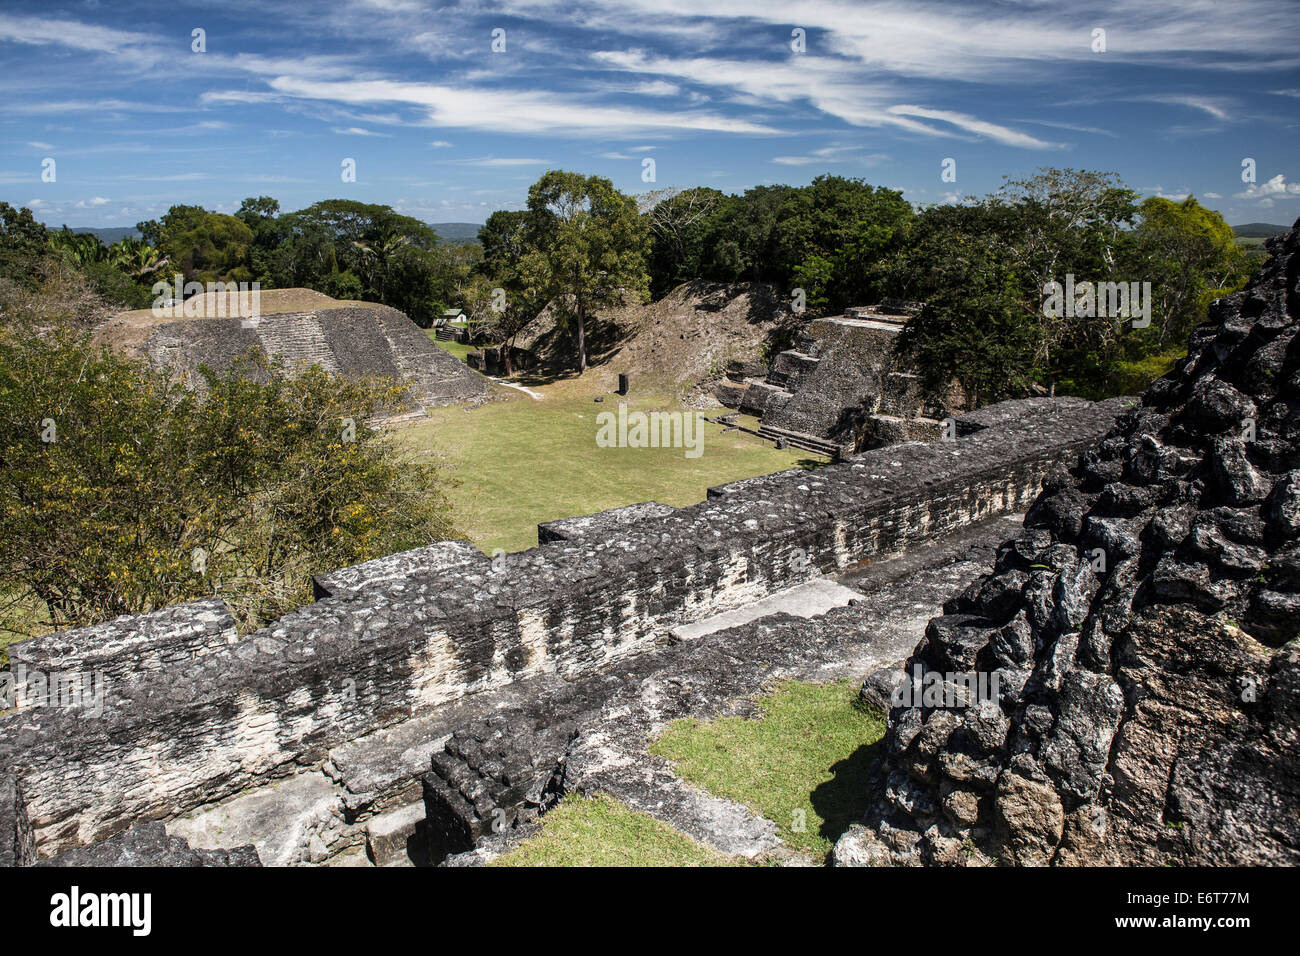 View of El Castillo Pyramid to Maya Ruins of Xunantunich, Caribbean, Belize - Stock Image